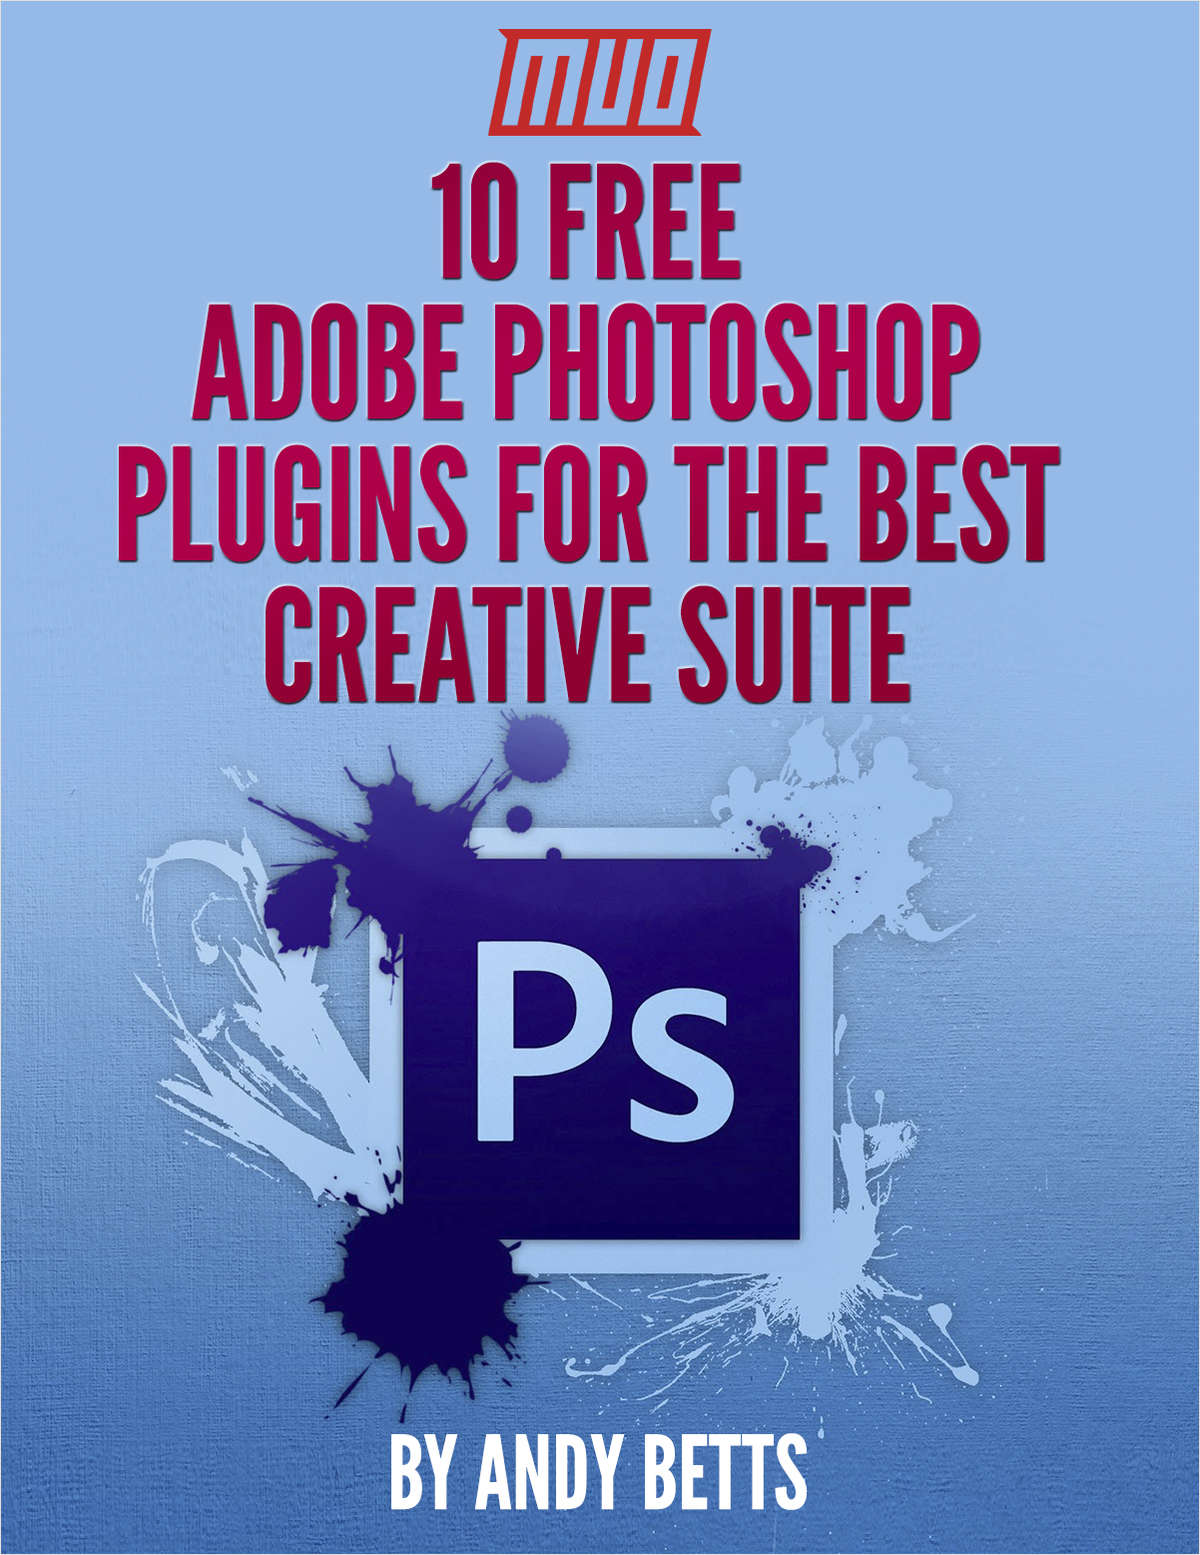 10 Free Adobe Photoshop Plugins for the Best Creative Suite